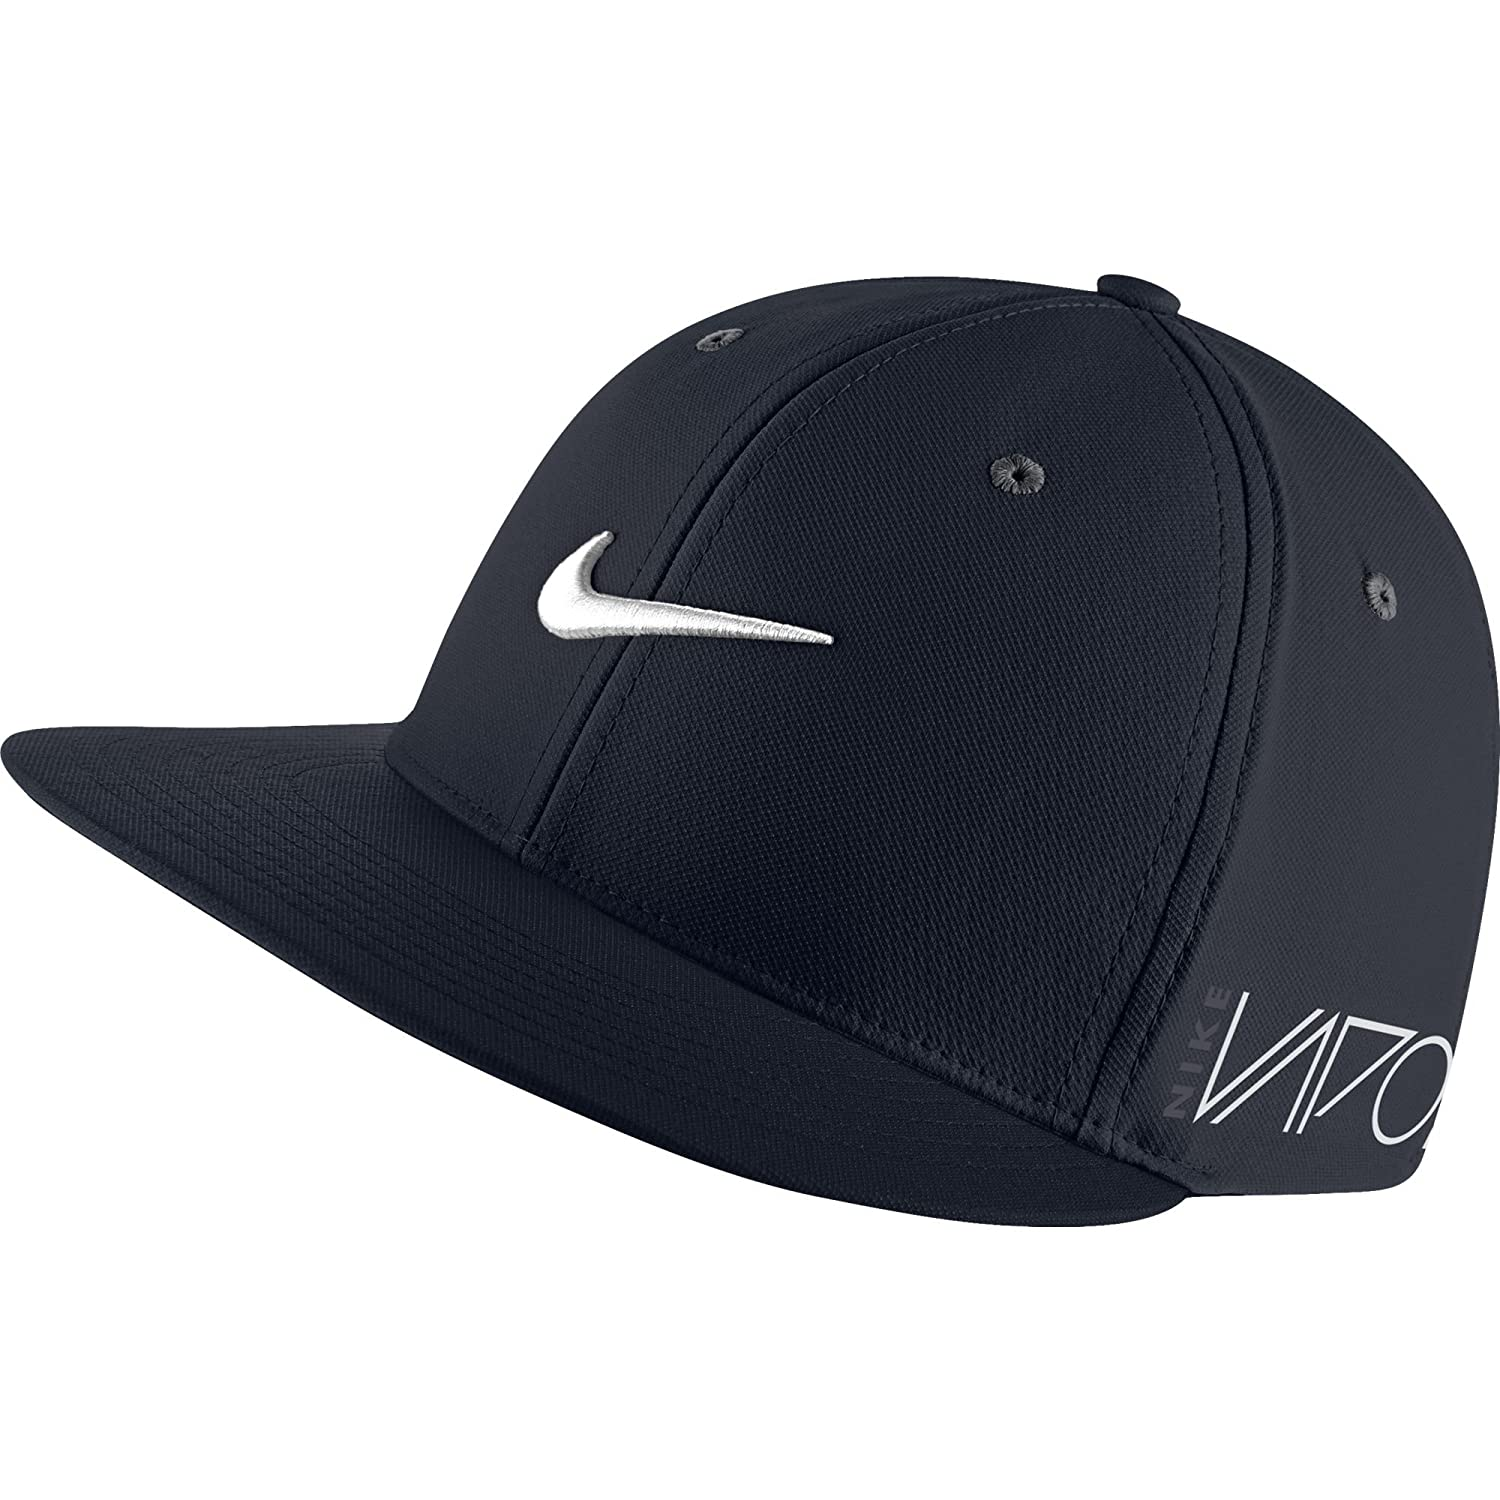 1f9a7ea72 Amazon.com: Nike 2015 Golf True Tour Vapor/RZN Flatbill Cap Color ...